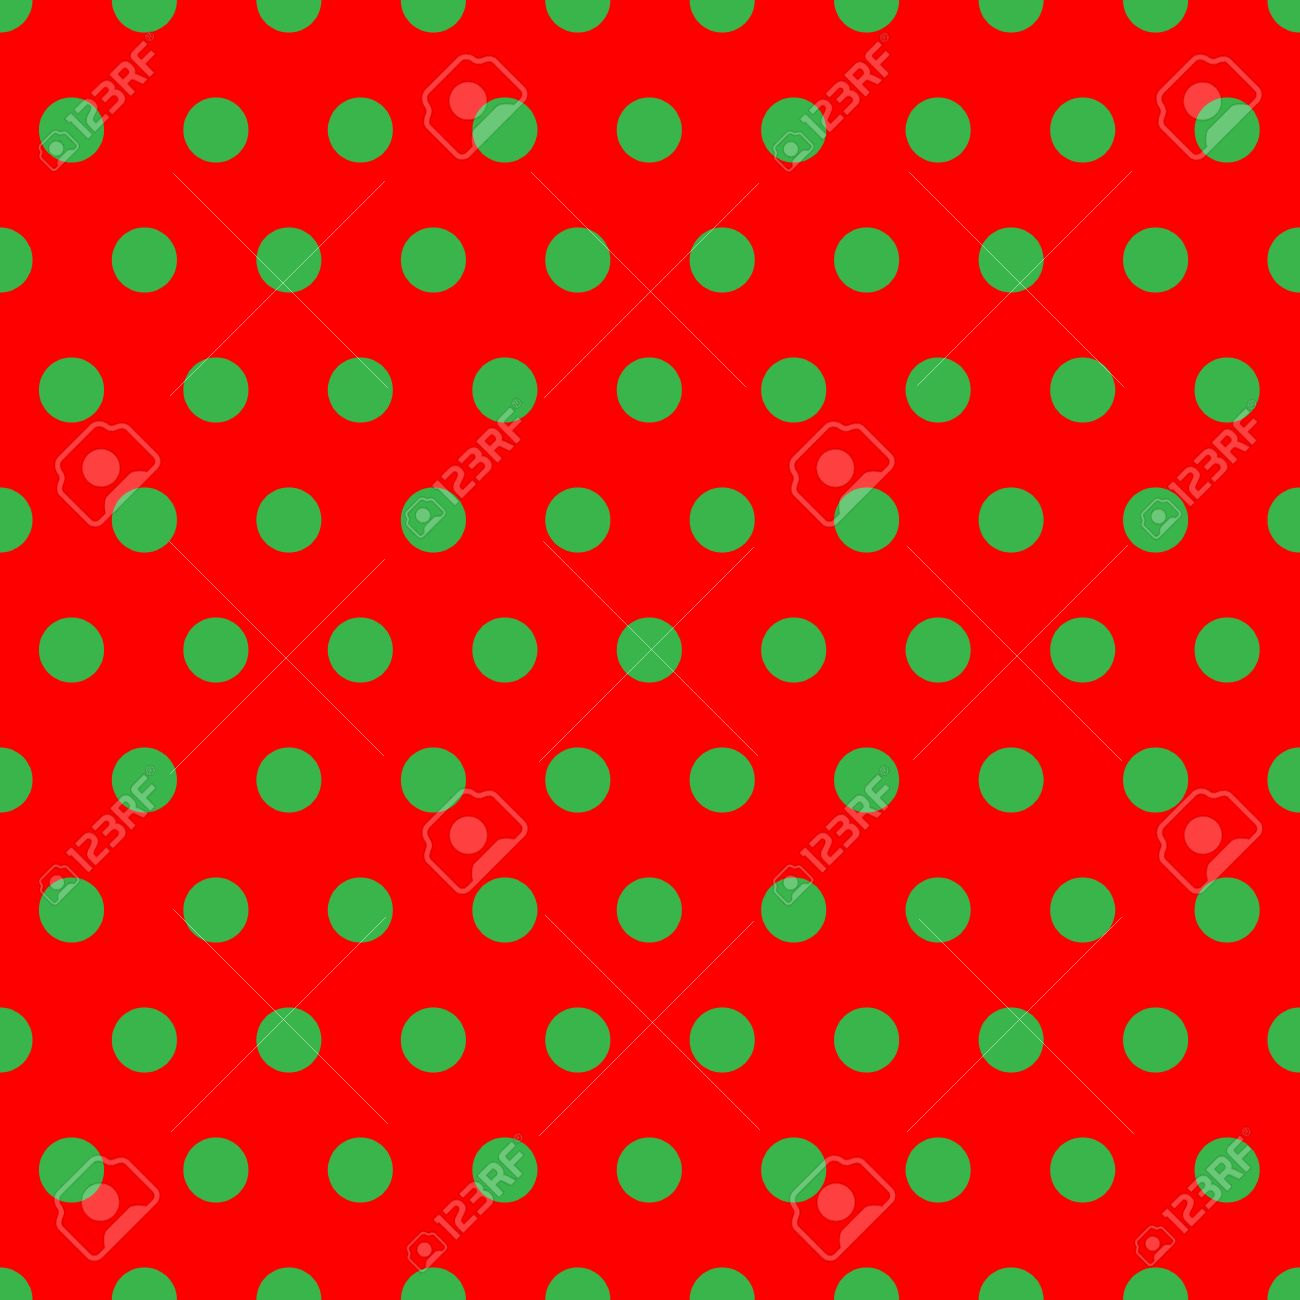 A Background Pattern Of Polka Dots In Christmas Colors Stock Photo ...